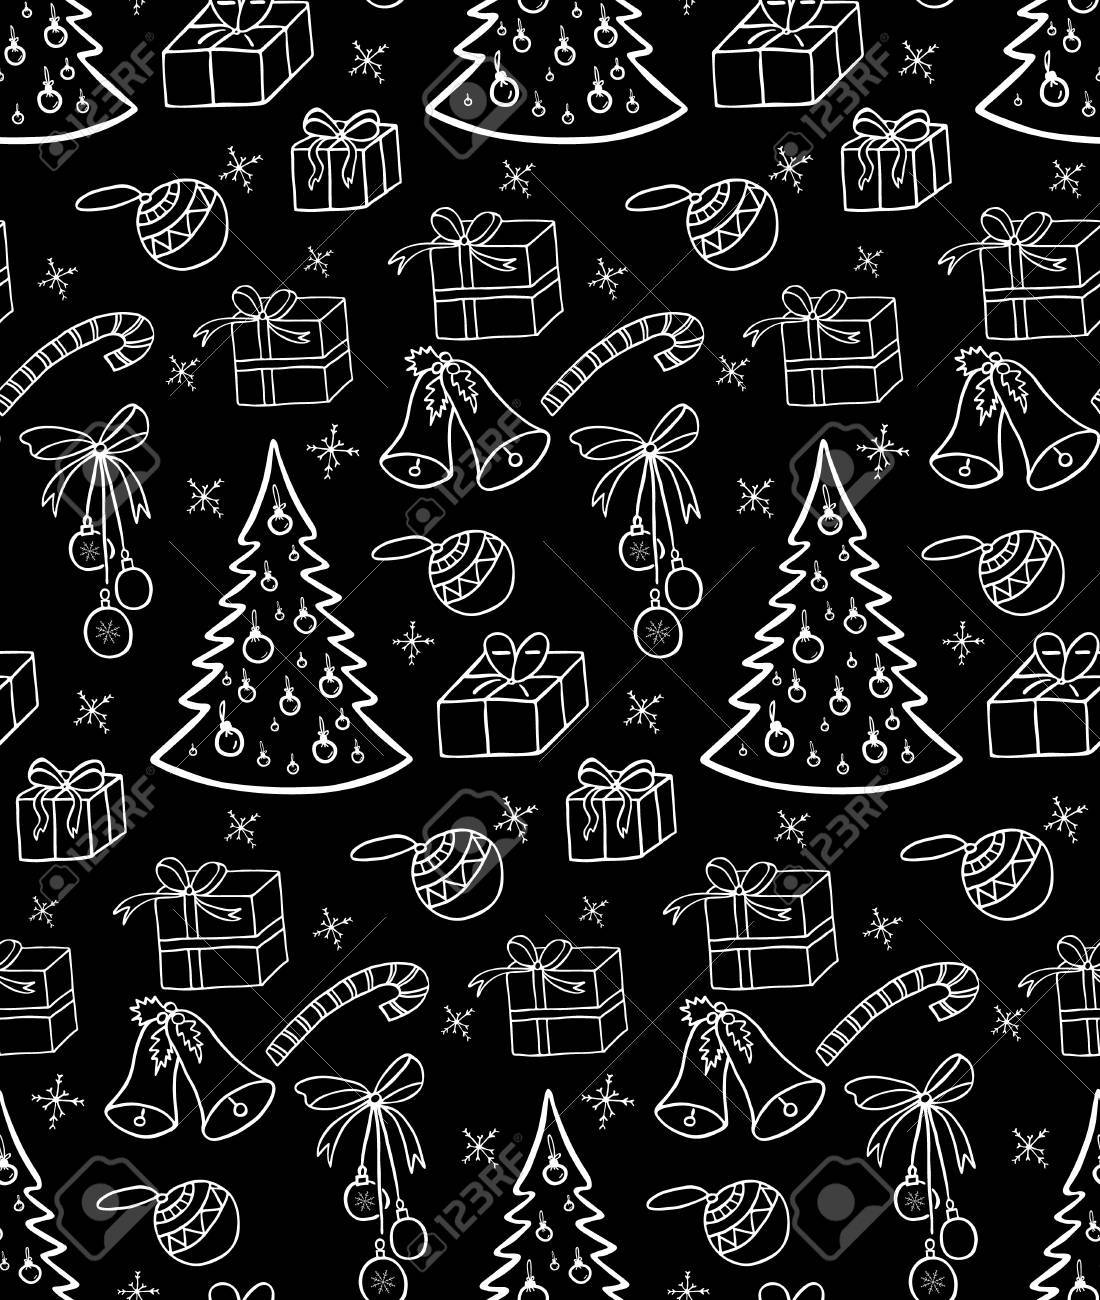 Christmas Background Illustration For A Wrapping Paper Wallpaper